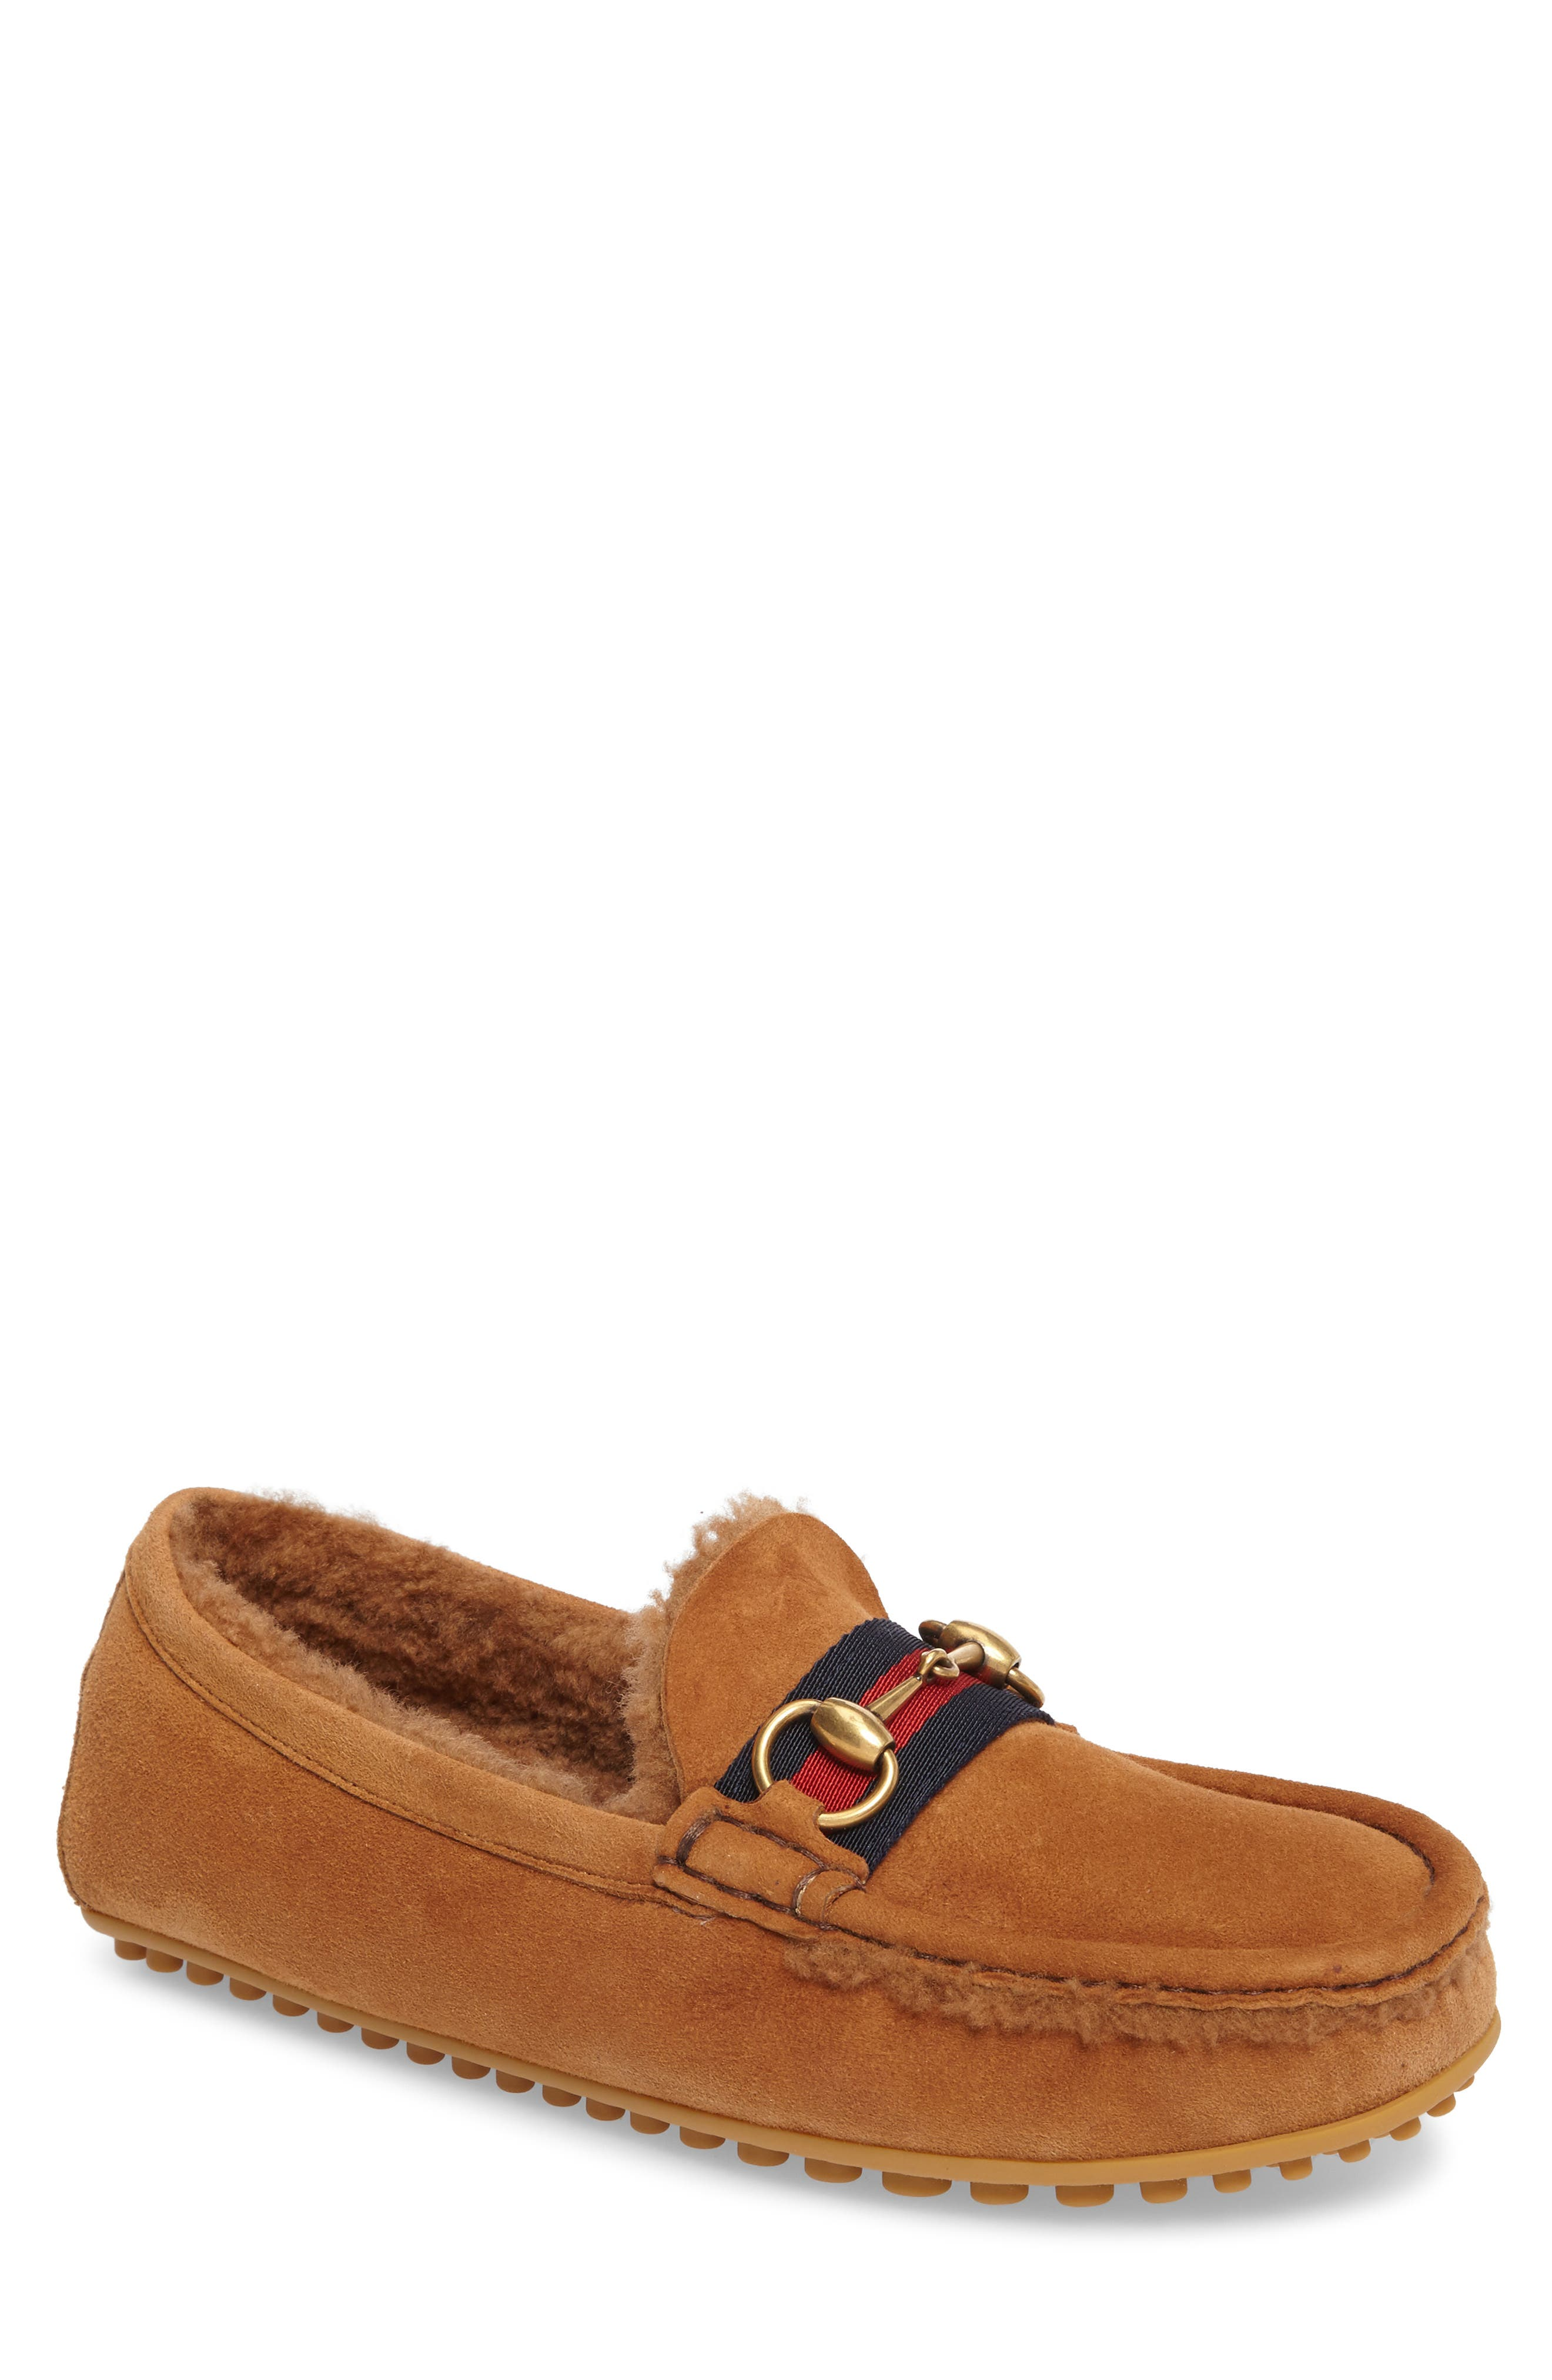 Driving Shoe with Genuine Shearling,                         Main,                         color,